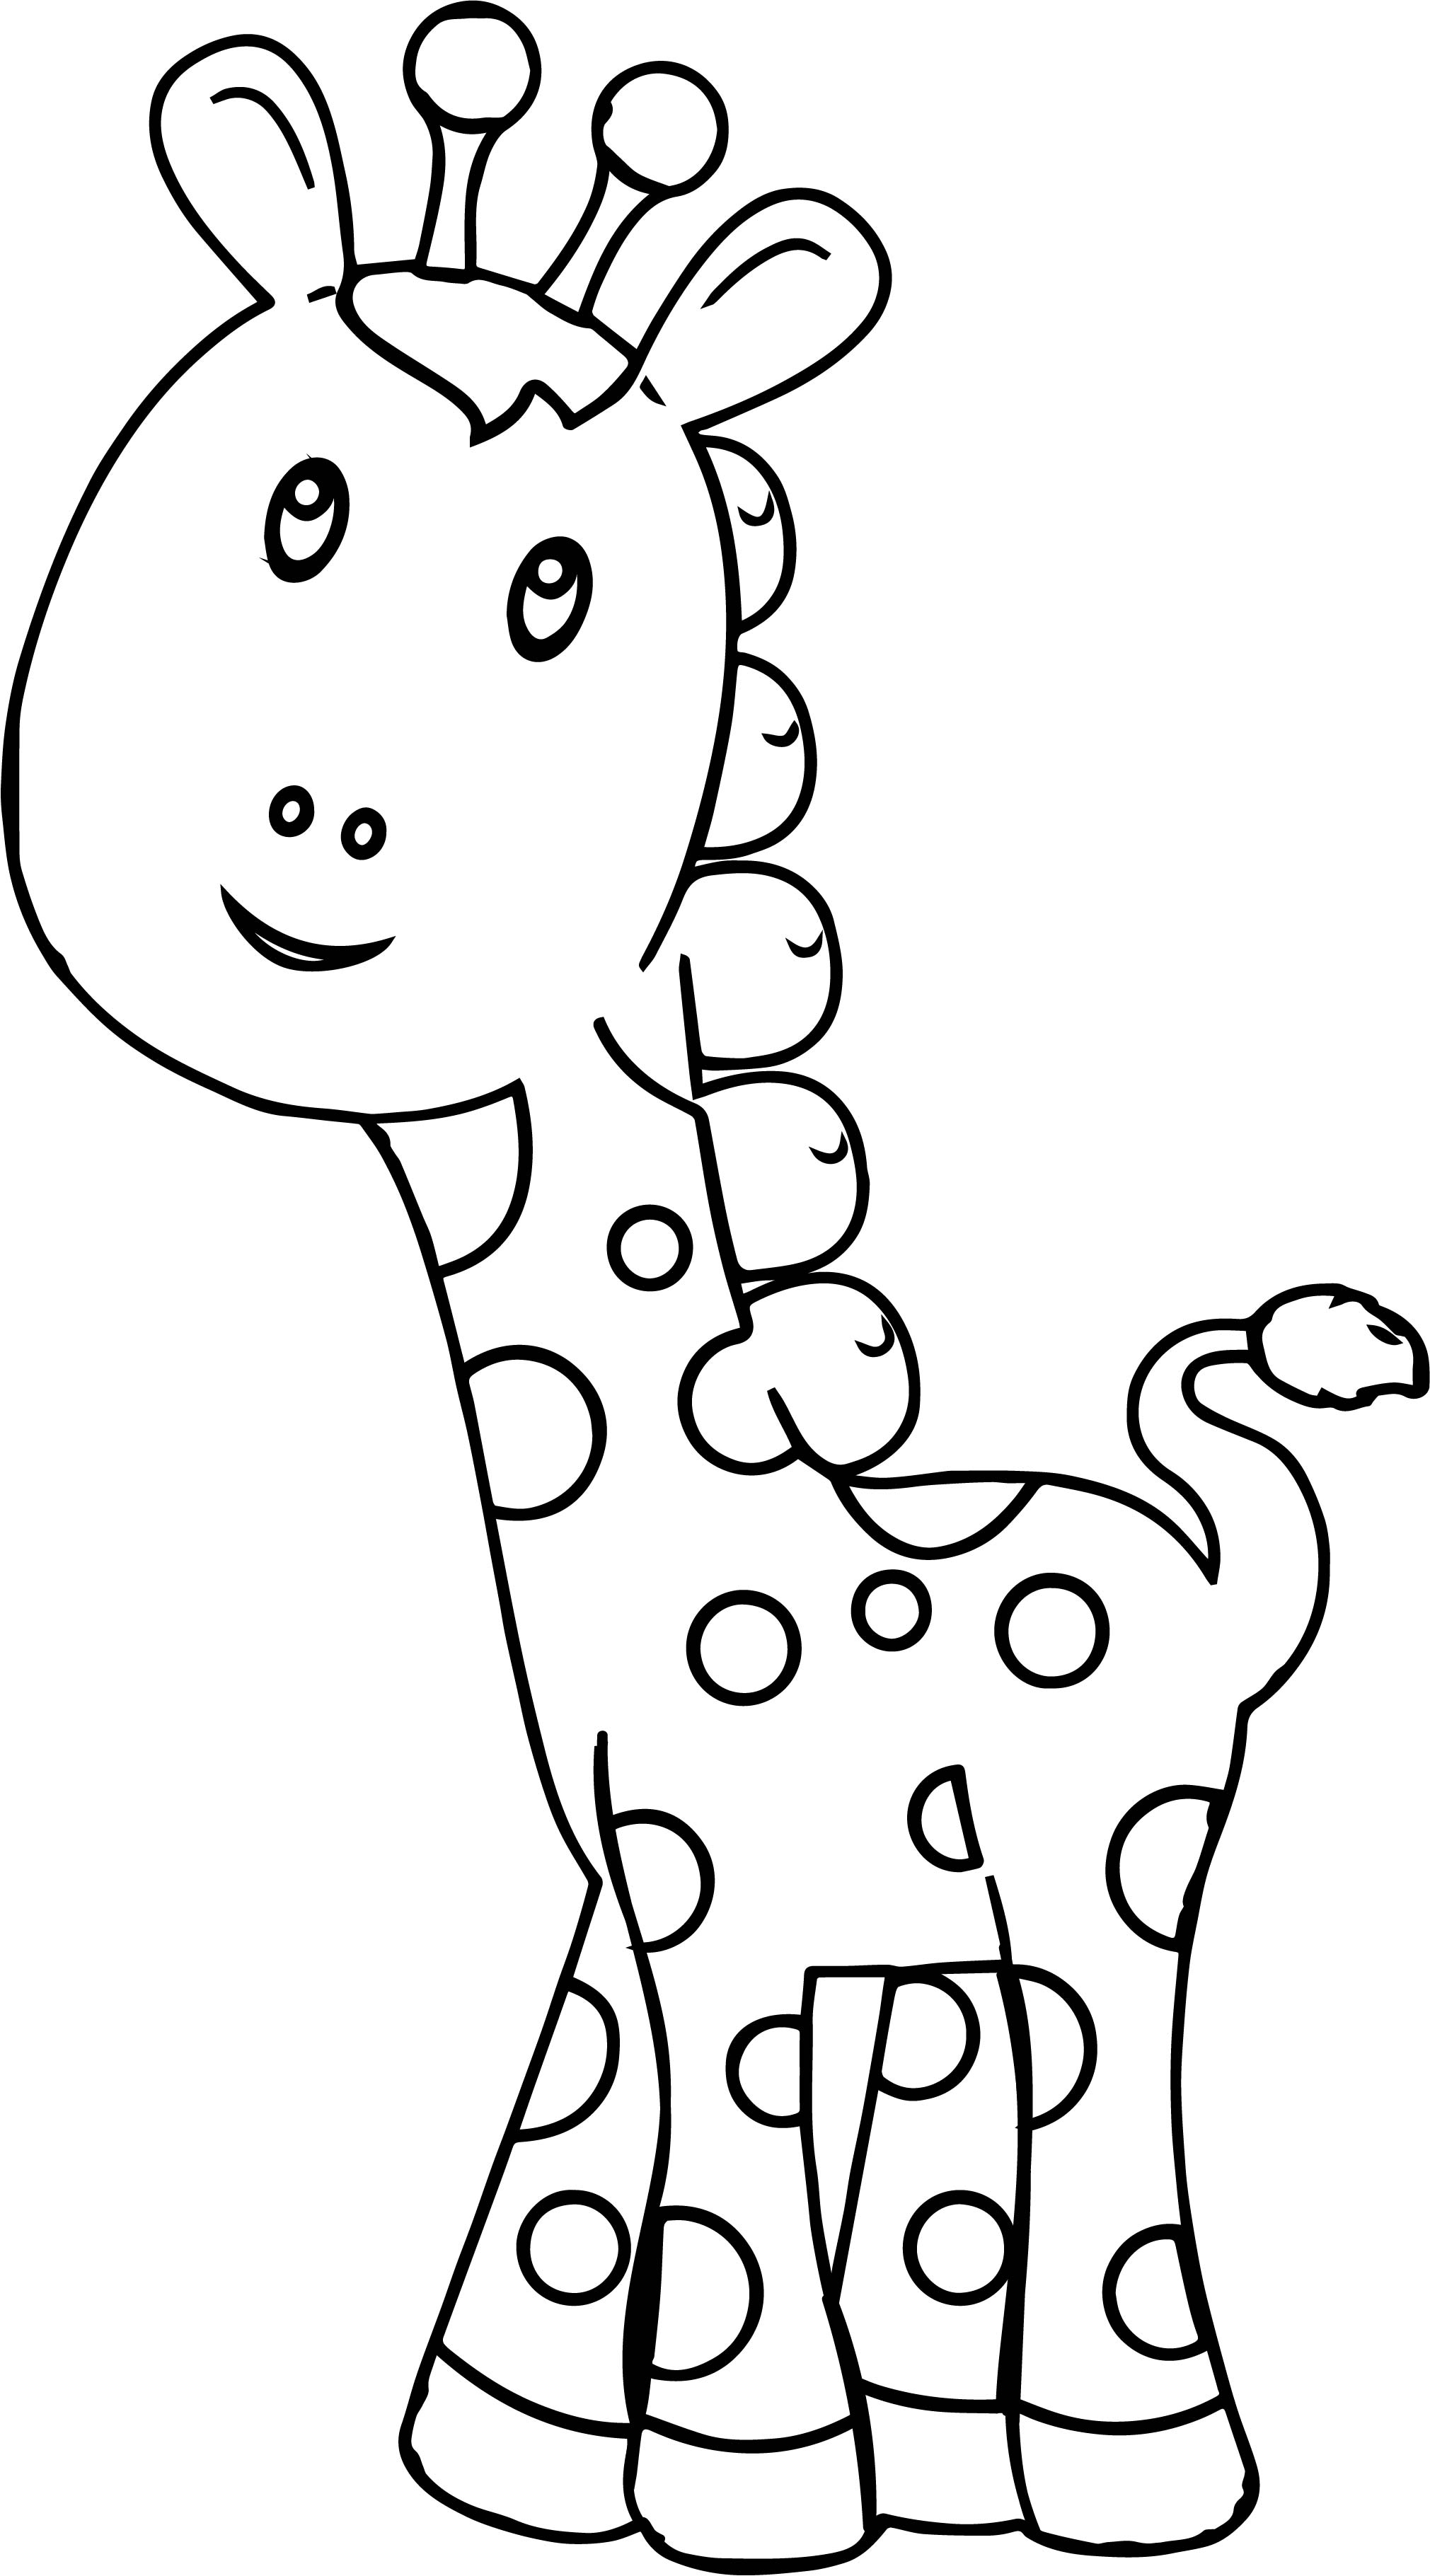 Giraffe preschool coloring page for Coloring page for preschool